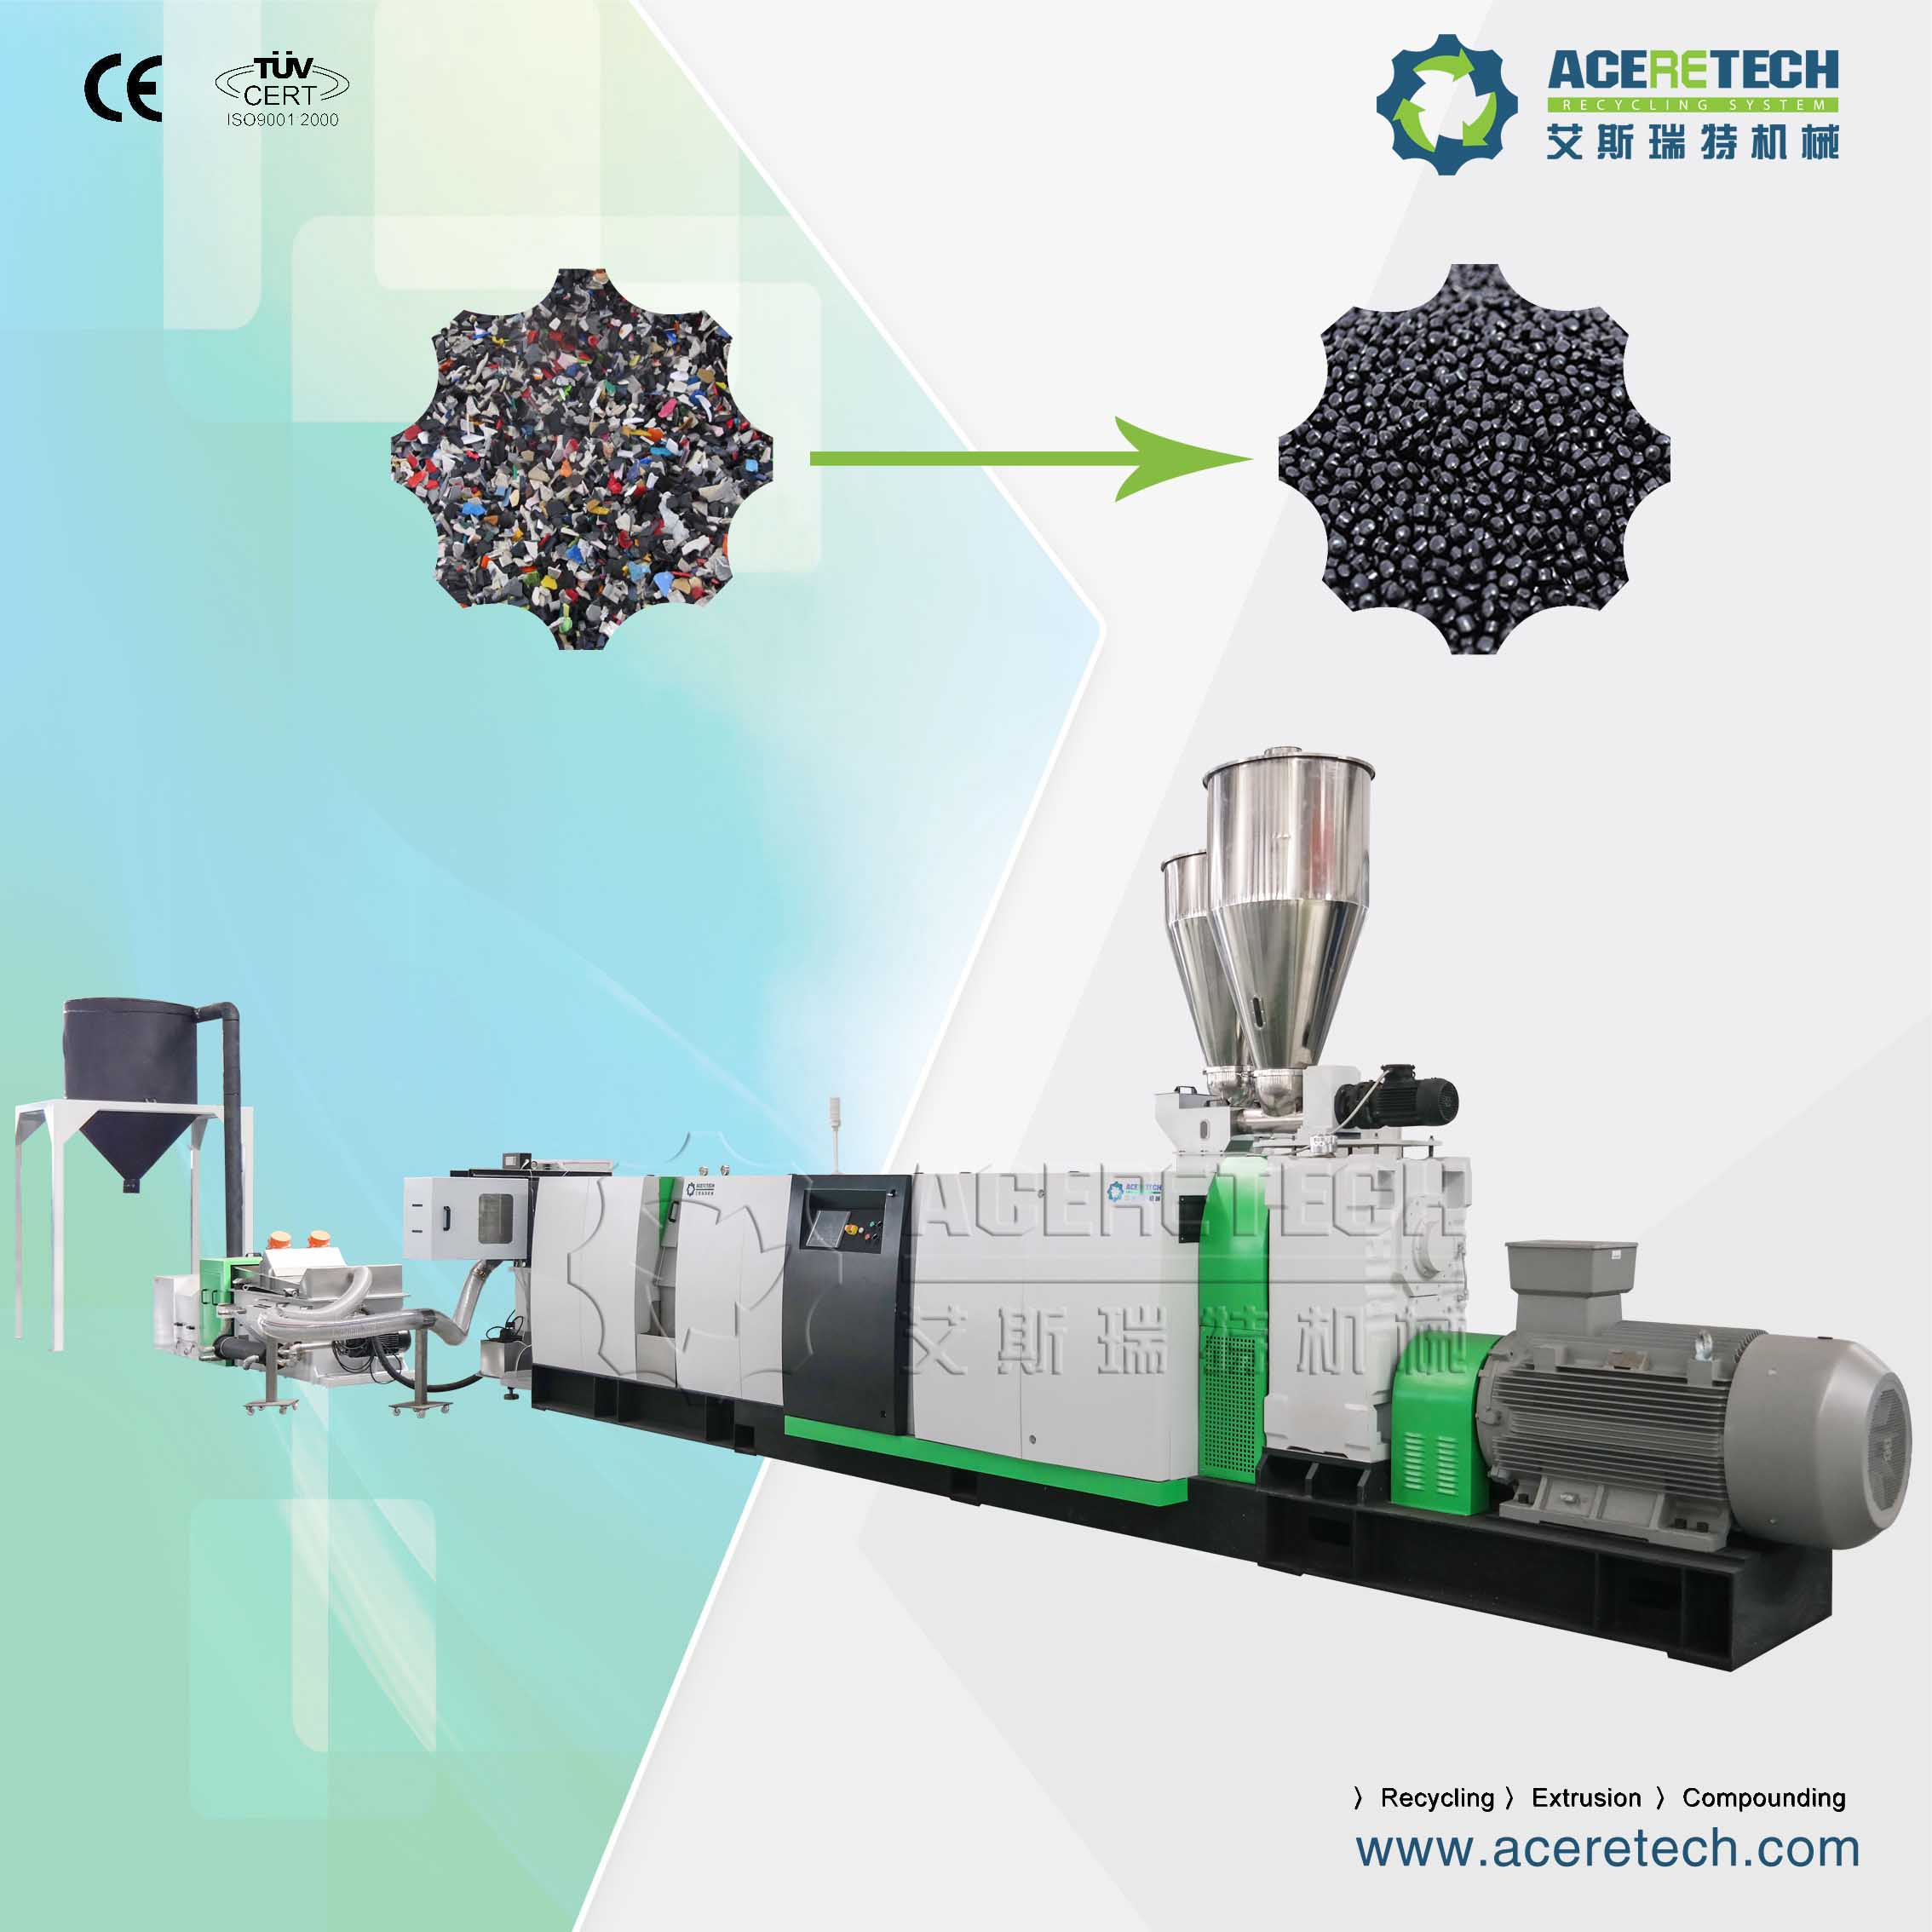 ACERETECH Recycling Technology